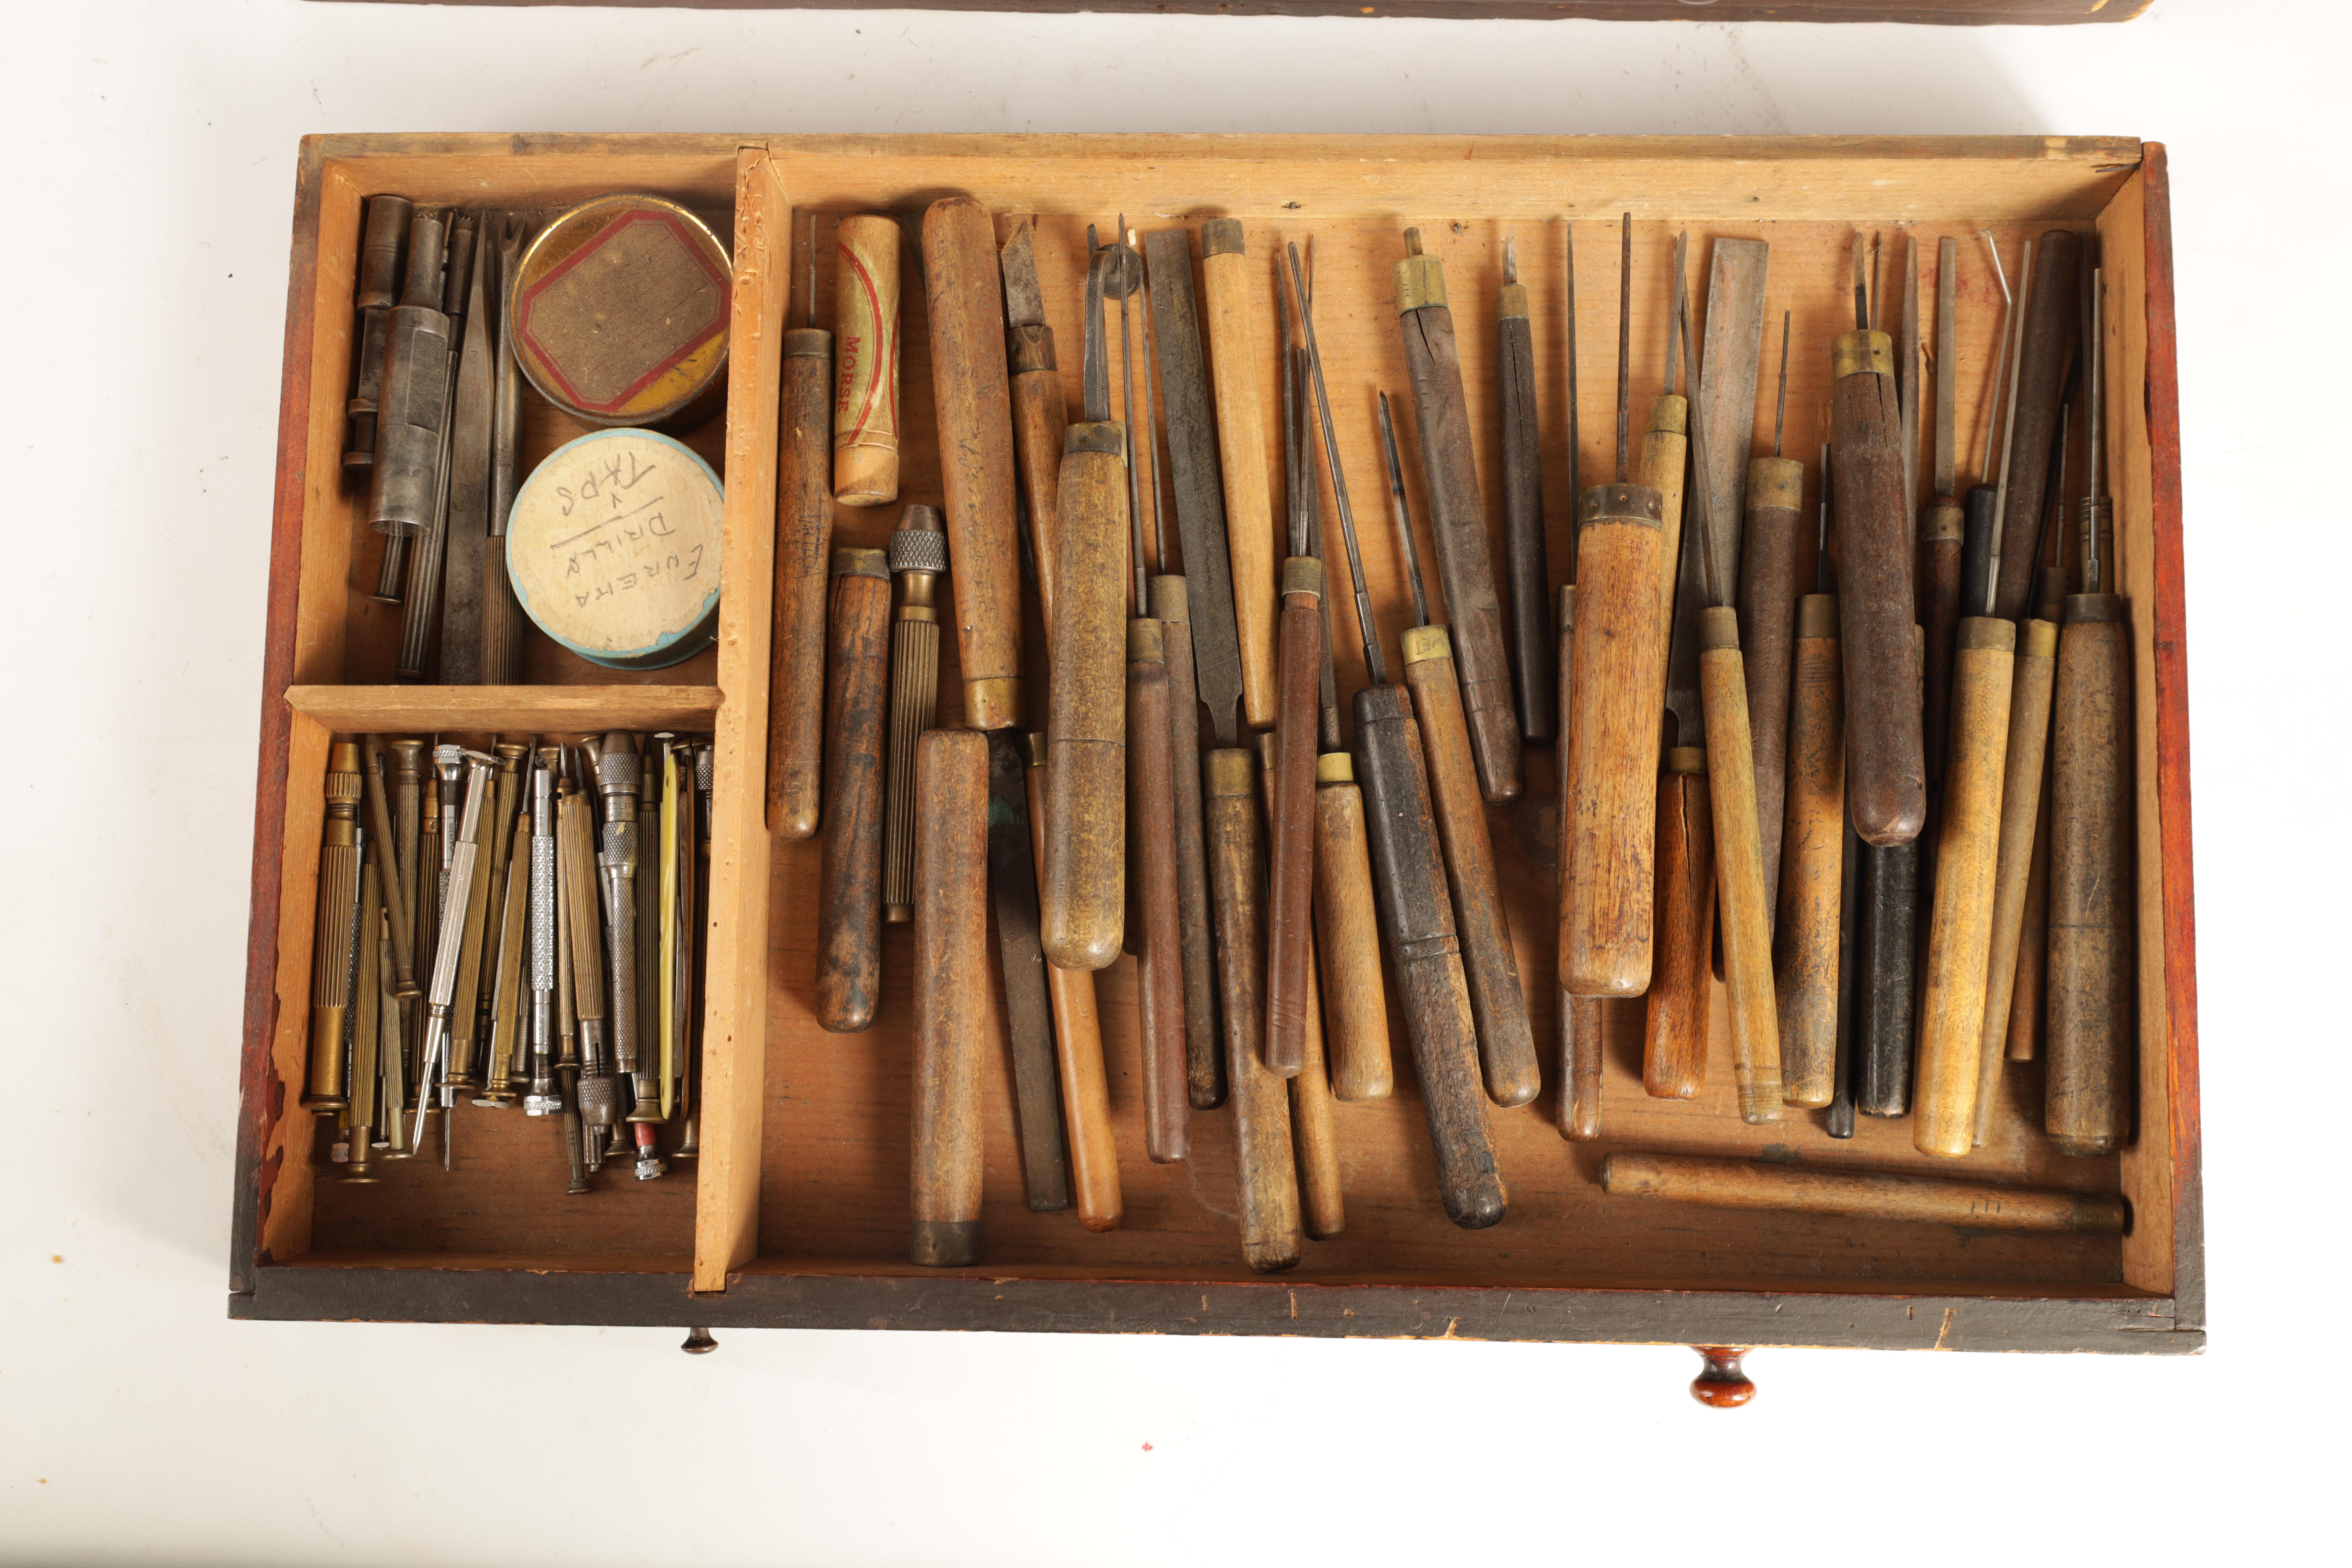 A LARGE COLLECTION OF JEWELERS AND WATCHMAKERS TOOLS contained in a set of pine drawers - Image 6 of 12